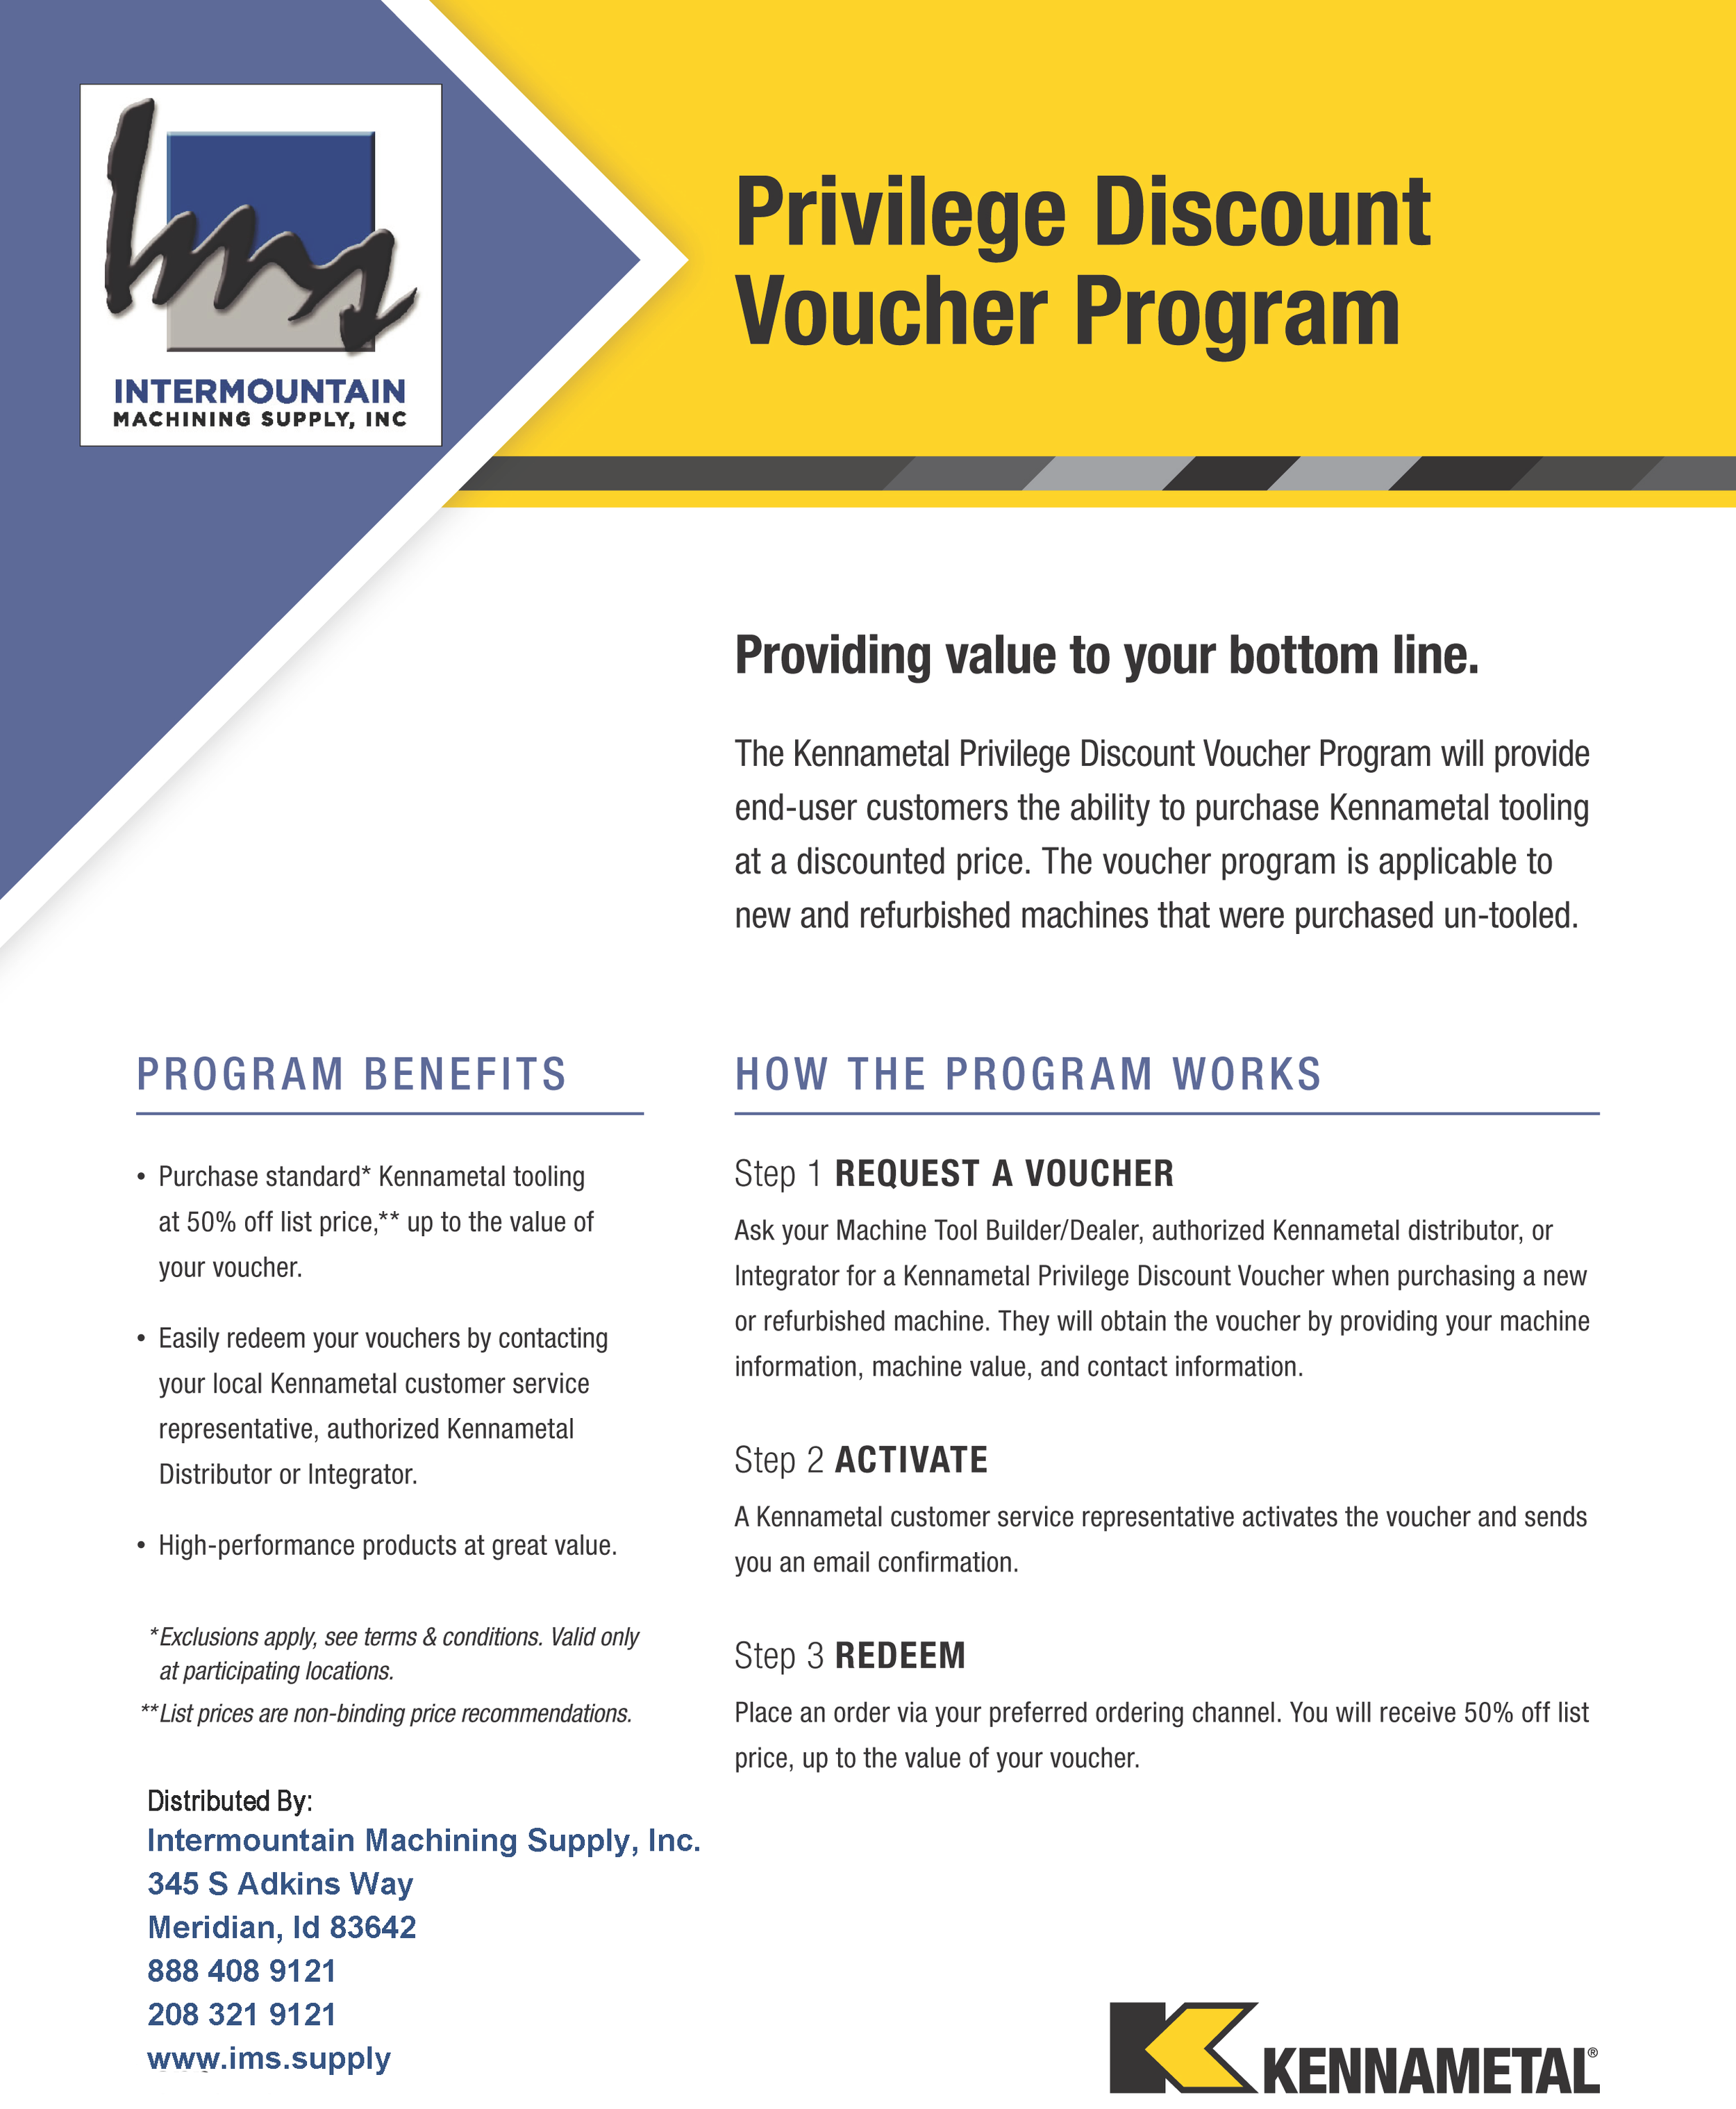 A-16-04798_KMT_Customer_Voucher_Program_Flyer_FINAL_EN-1_Page_1.png